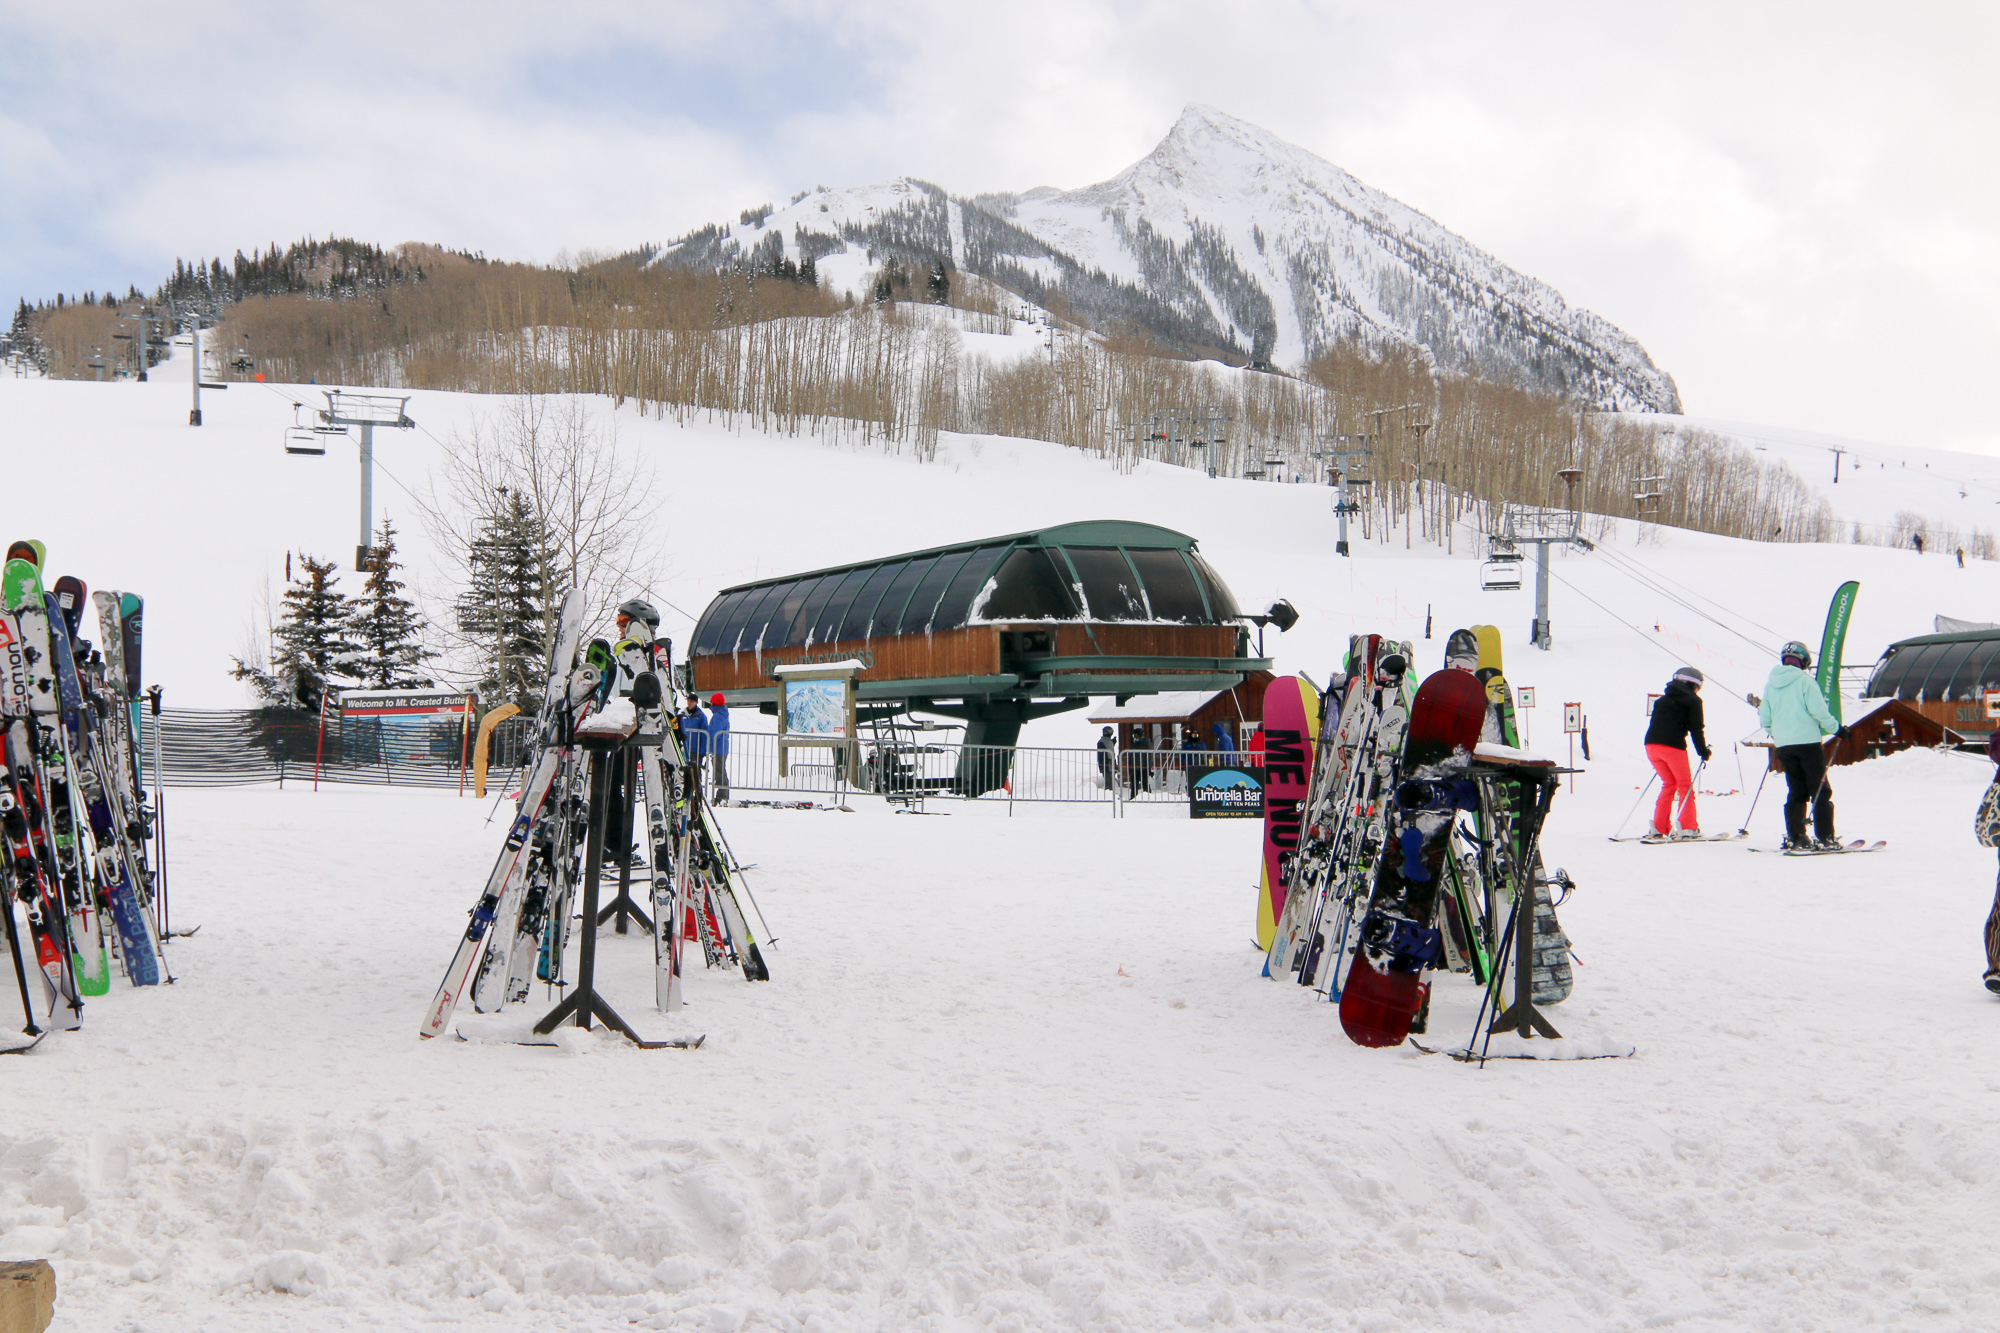 Condominium for Sale at Emmons Ski Condo 11 Emmons Loop Mount Crested Butte, Colorado, 81225 United States